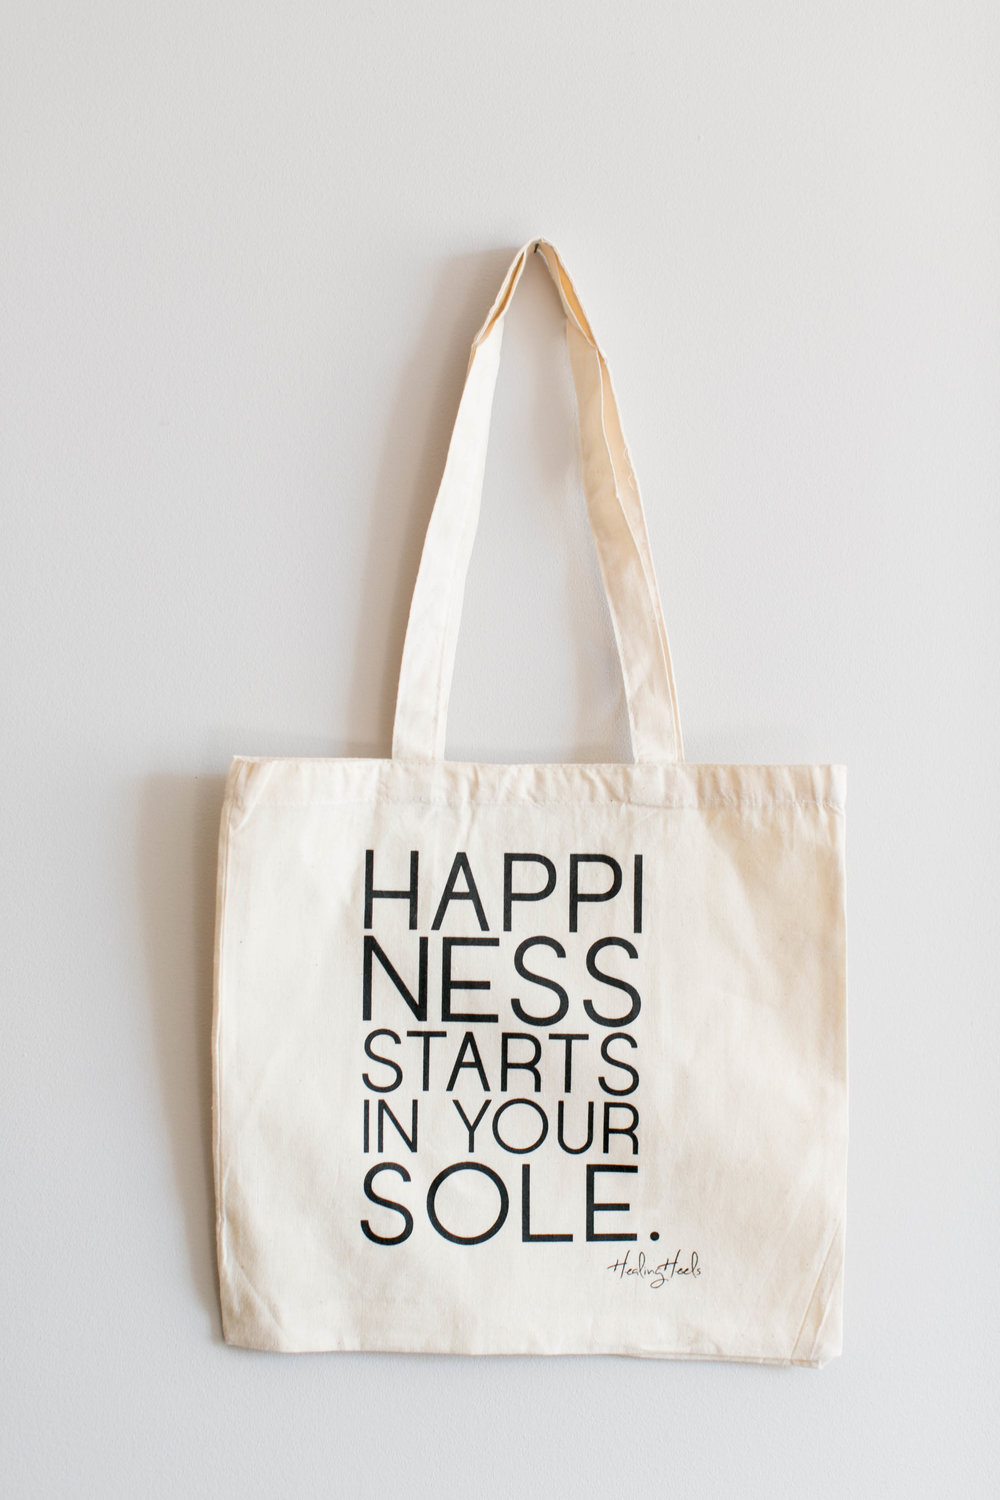 The Healing Heels 'Happiness Tote ' - Each purchase helps gift a pair of Healing Heels to a woman in cancer treatment.